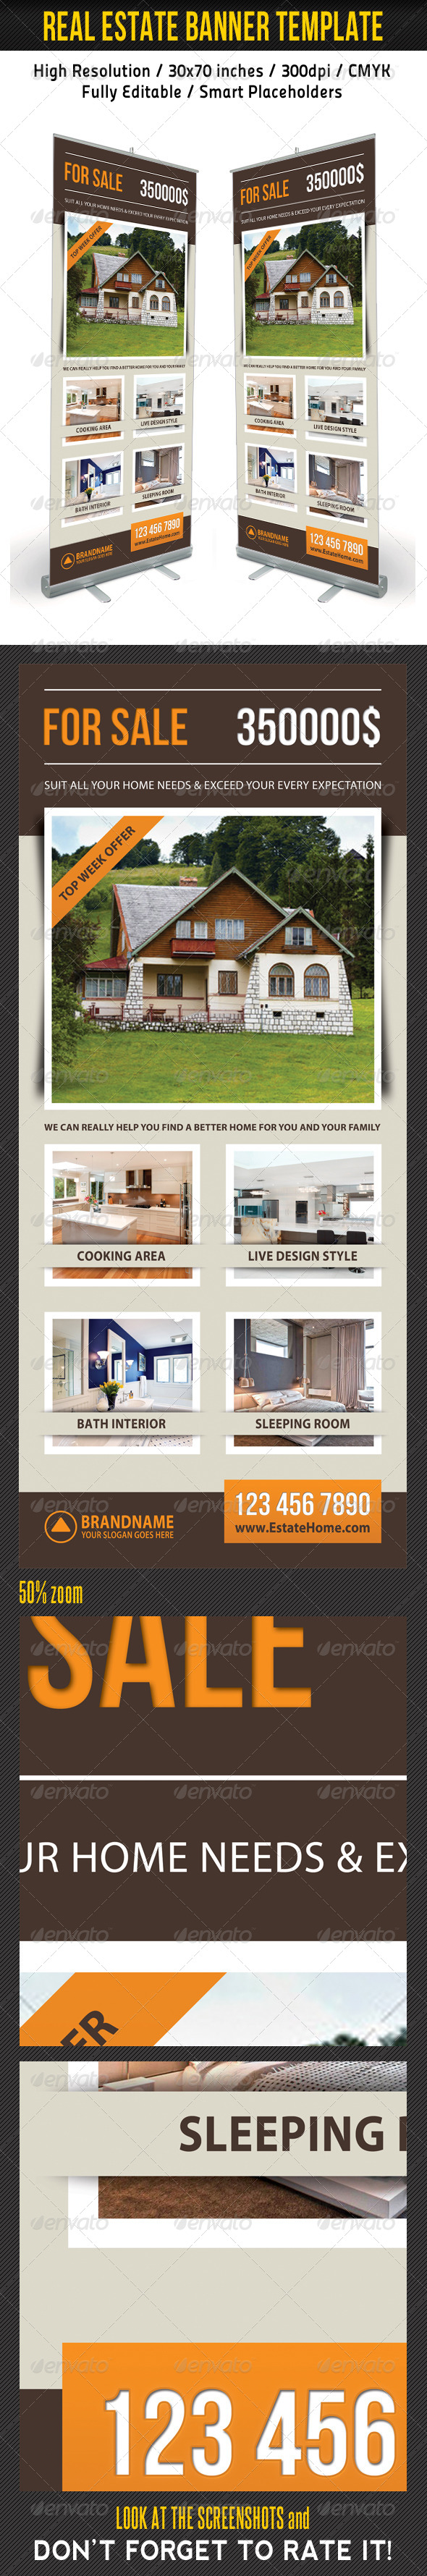 GraphicRiver Real Estate Banner Template 13 7338376